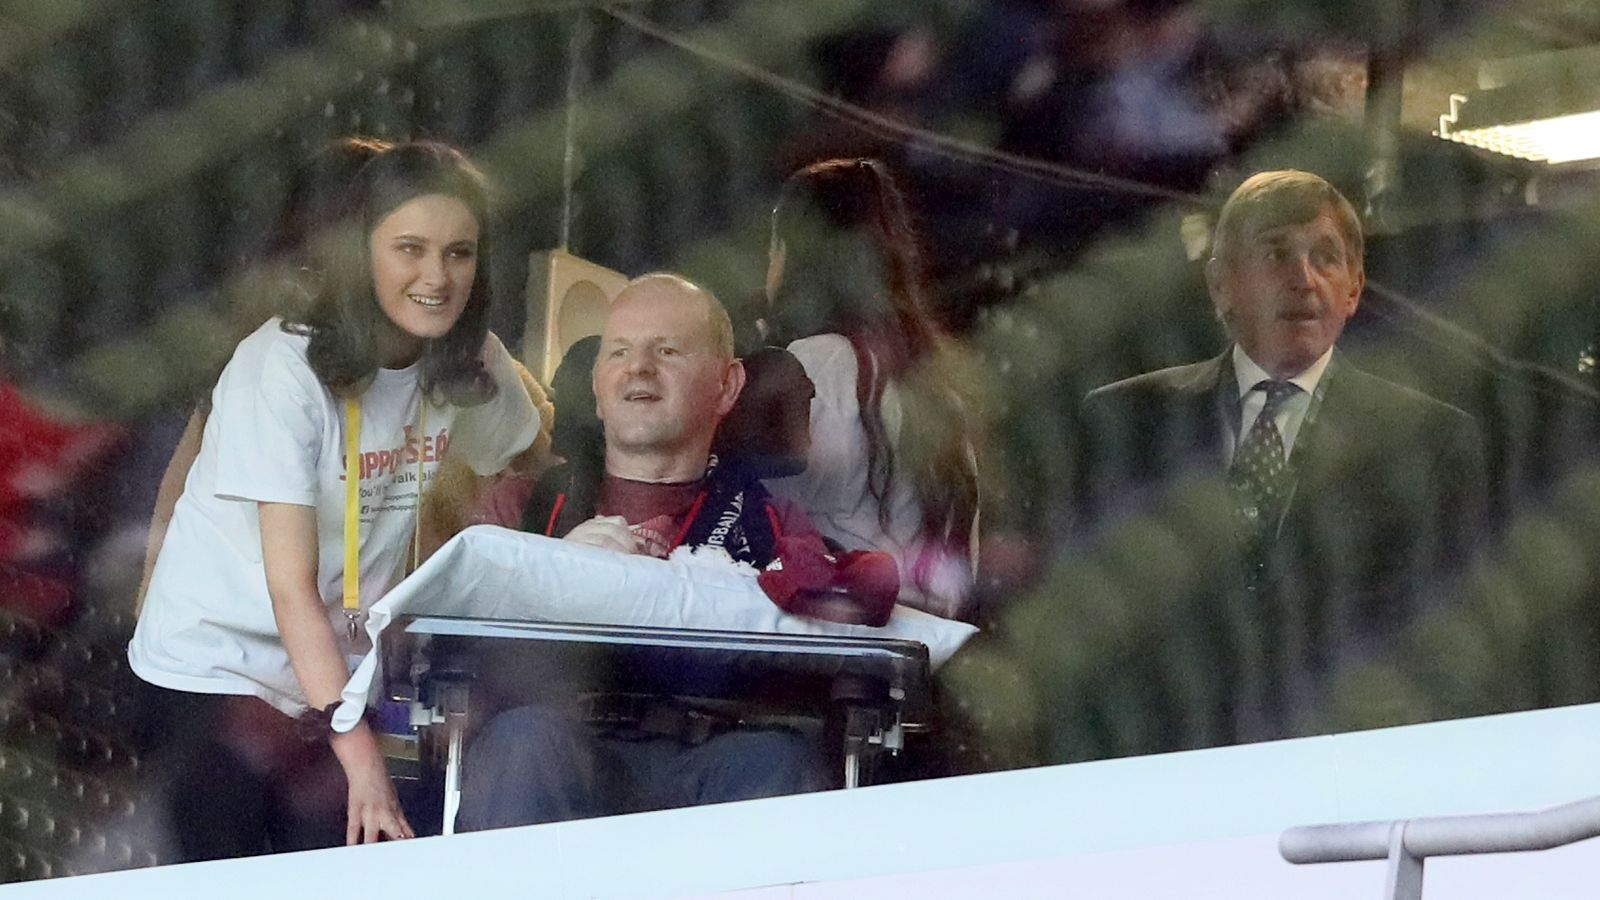 Liverpool fan Sean Cox returns home almost two years after attack by Roma supporter - Sky Sports